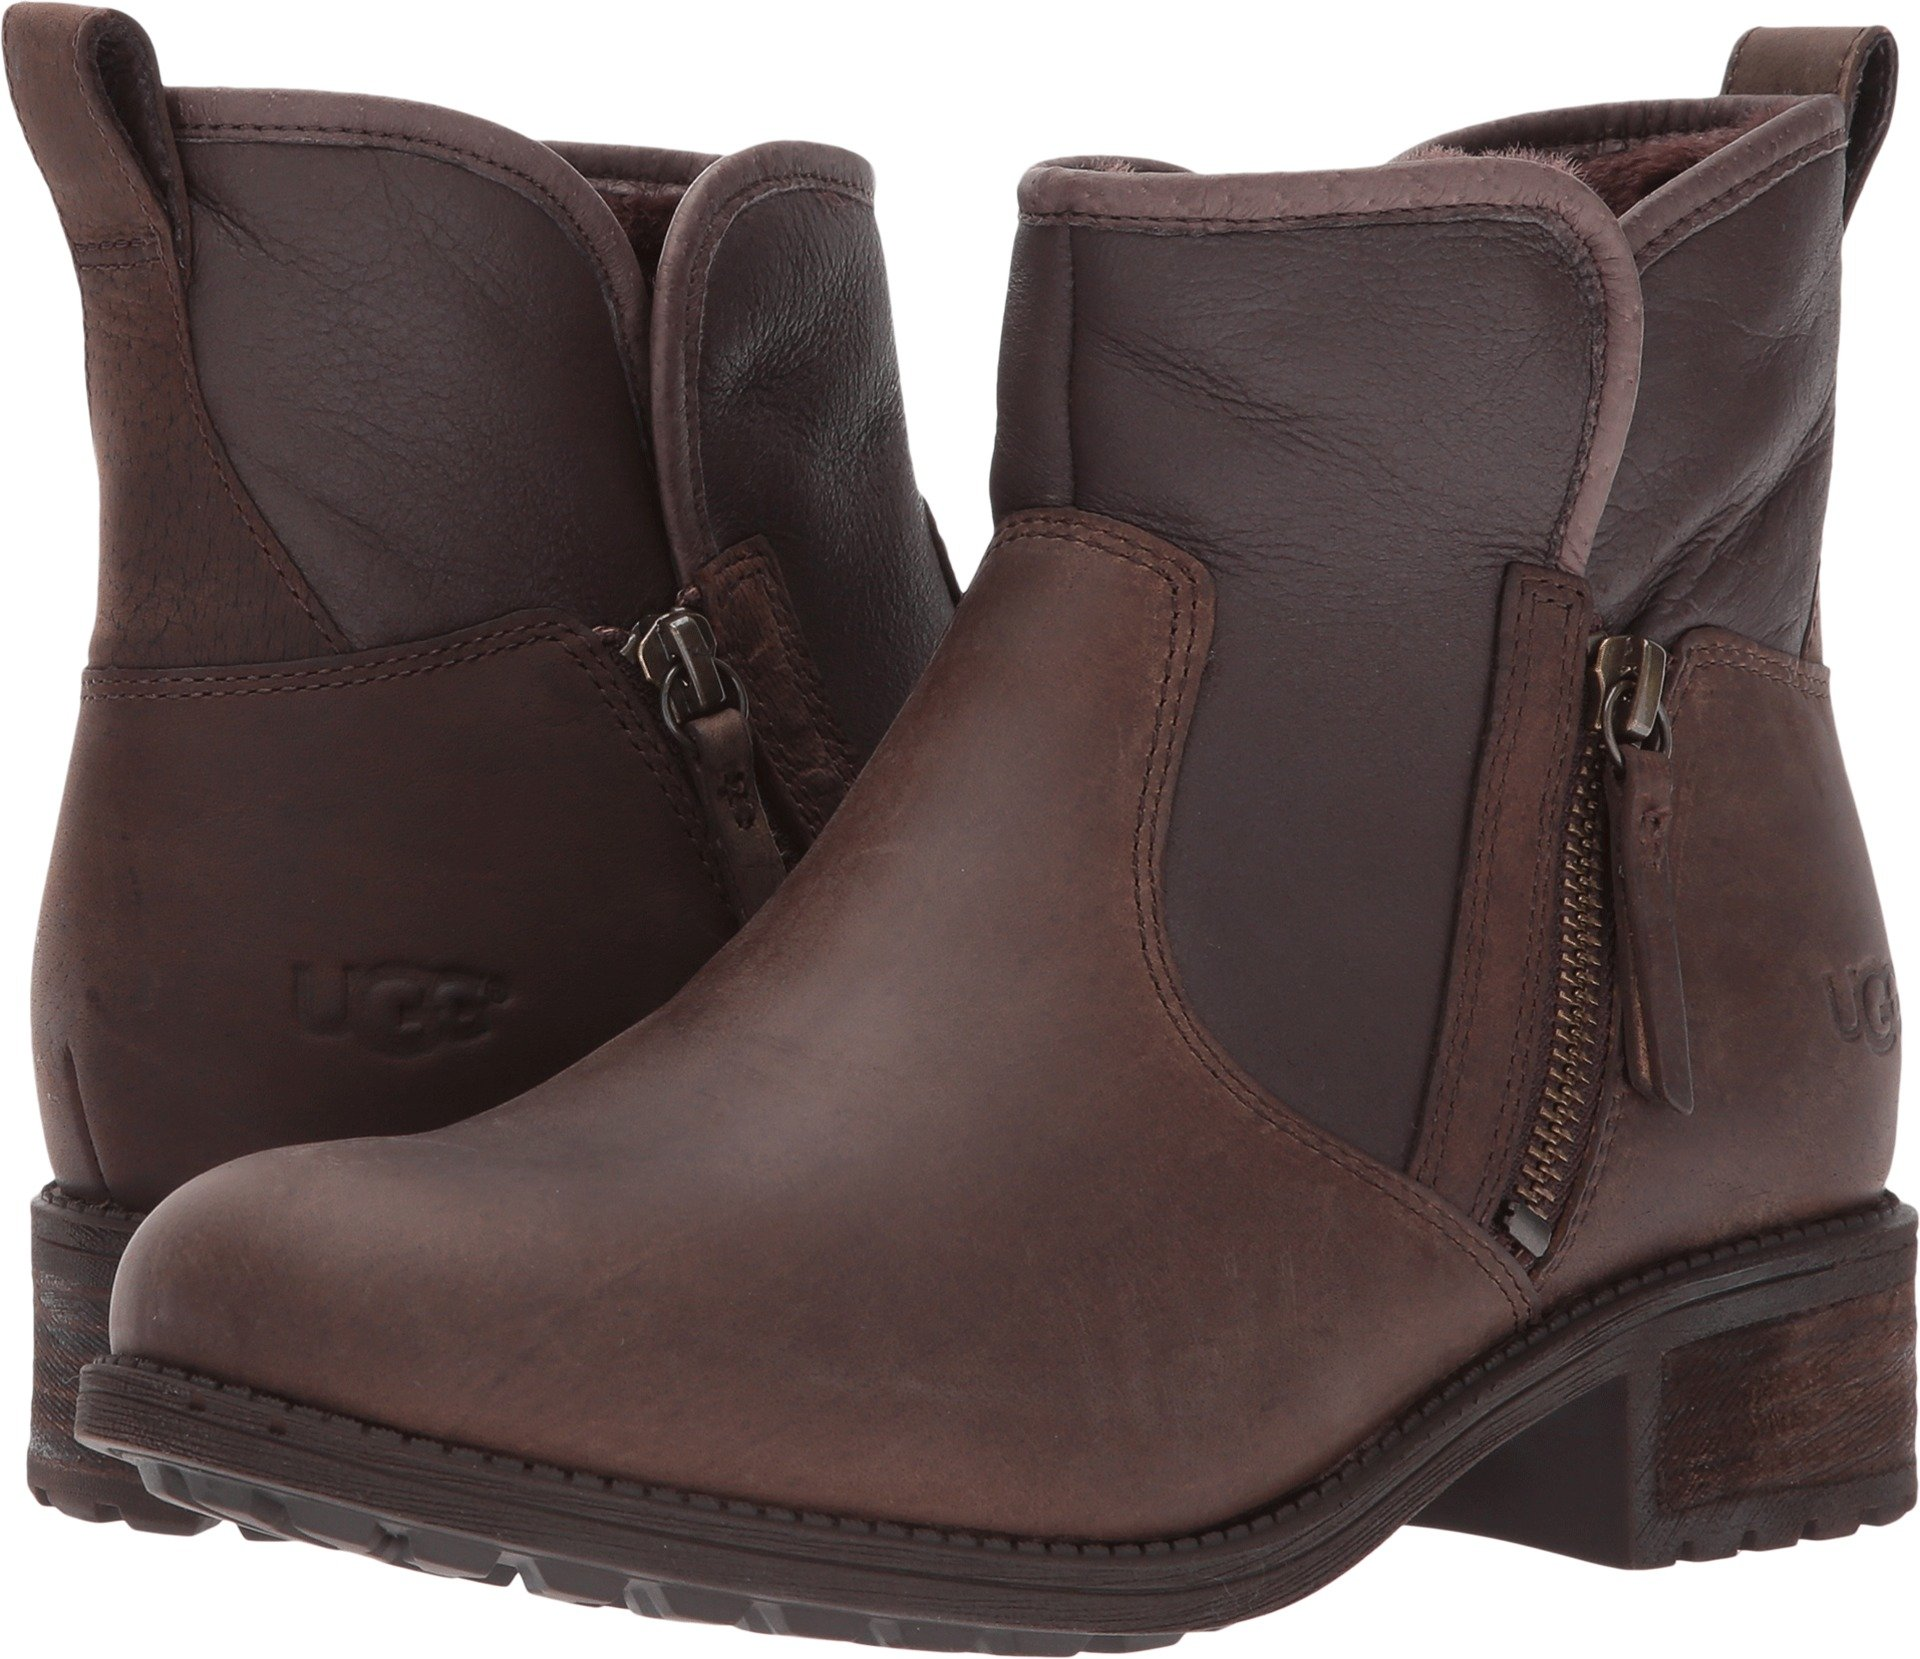 UGG Women's Lavelle Boot Stout Size 6.5 B(M) US by UGG